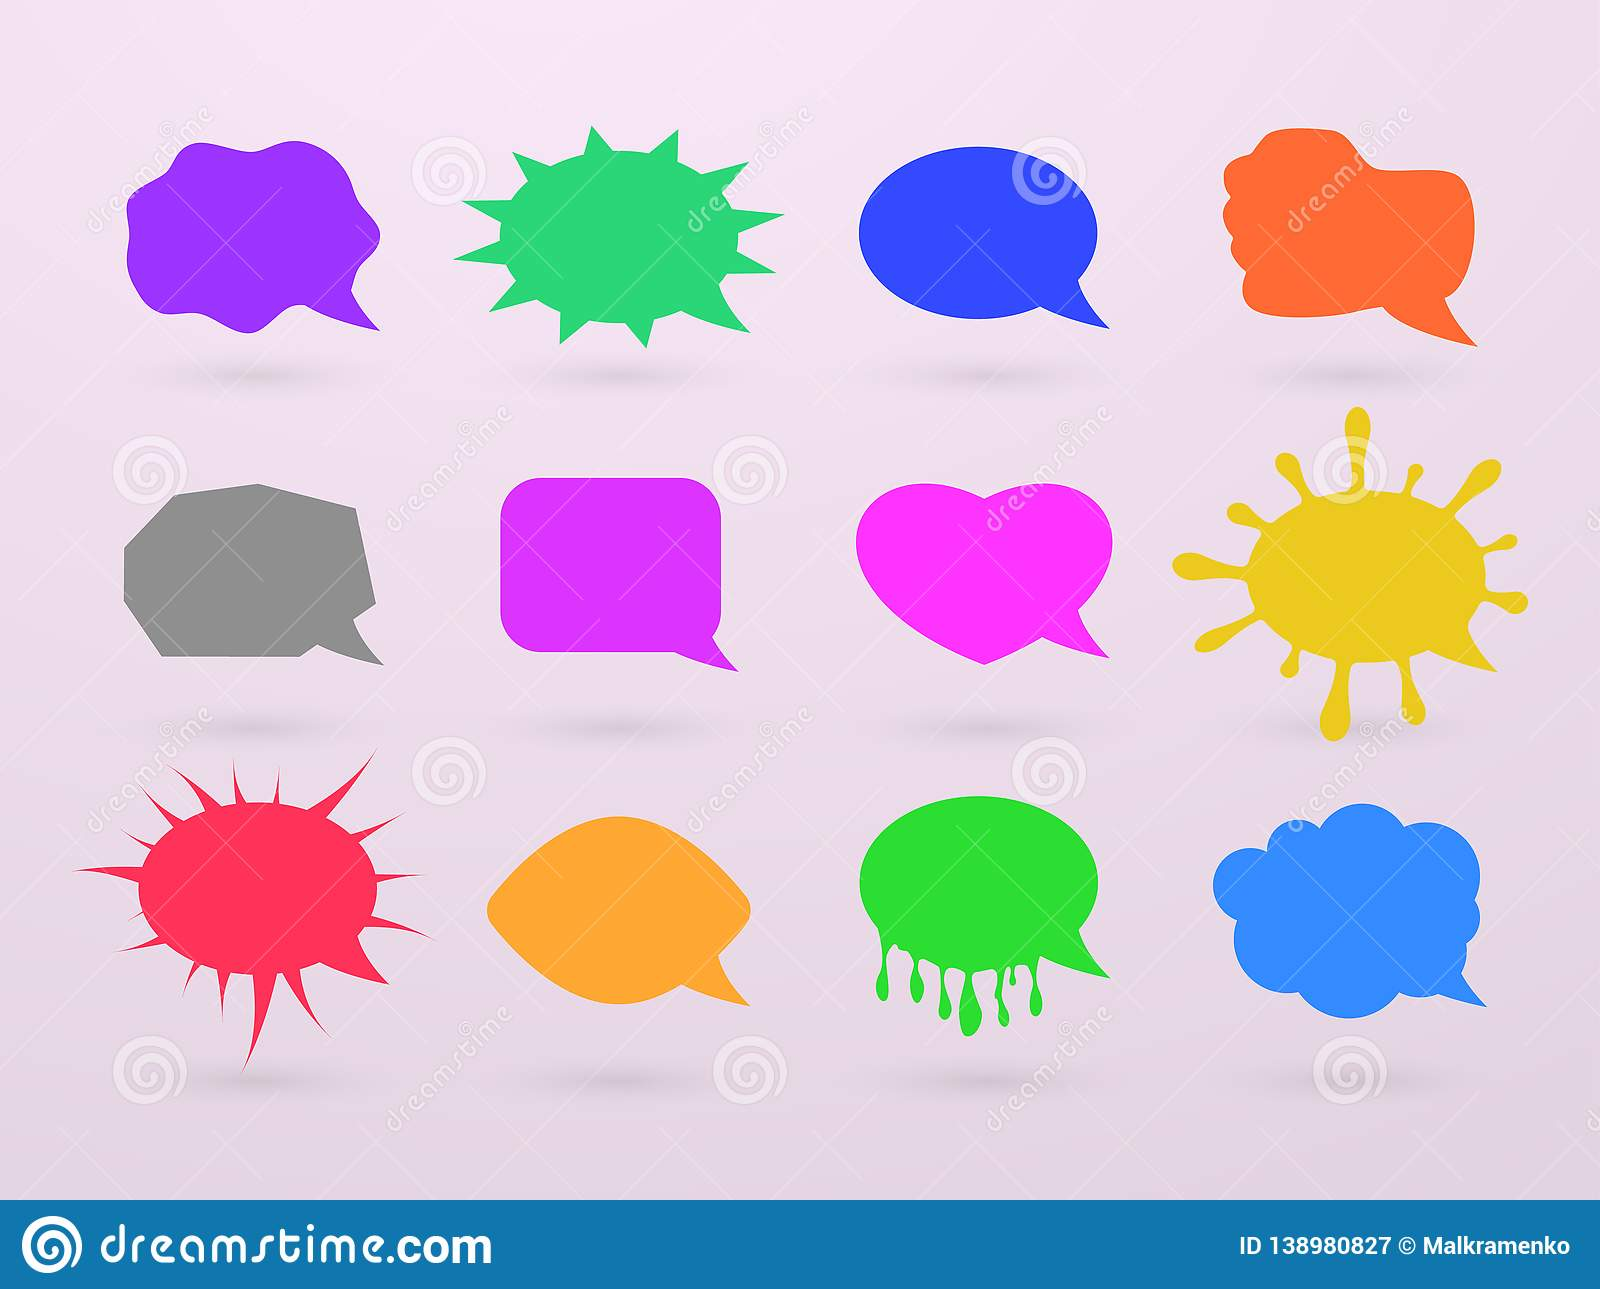 Empty speech bubbles, chat boxes of various forms for adding text and expressing feelings. Vector illustration.